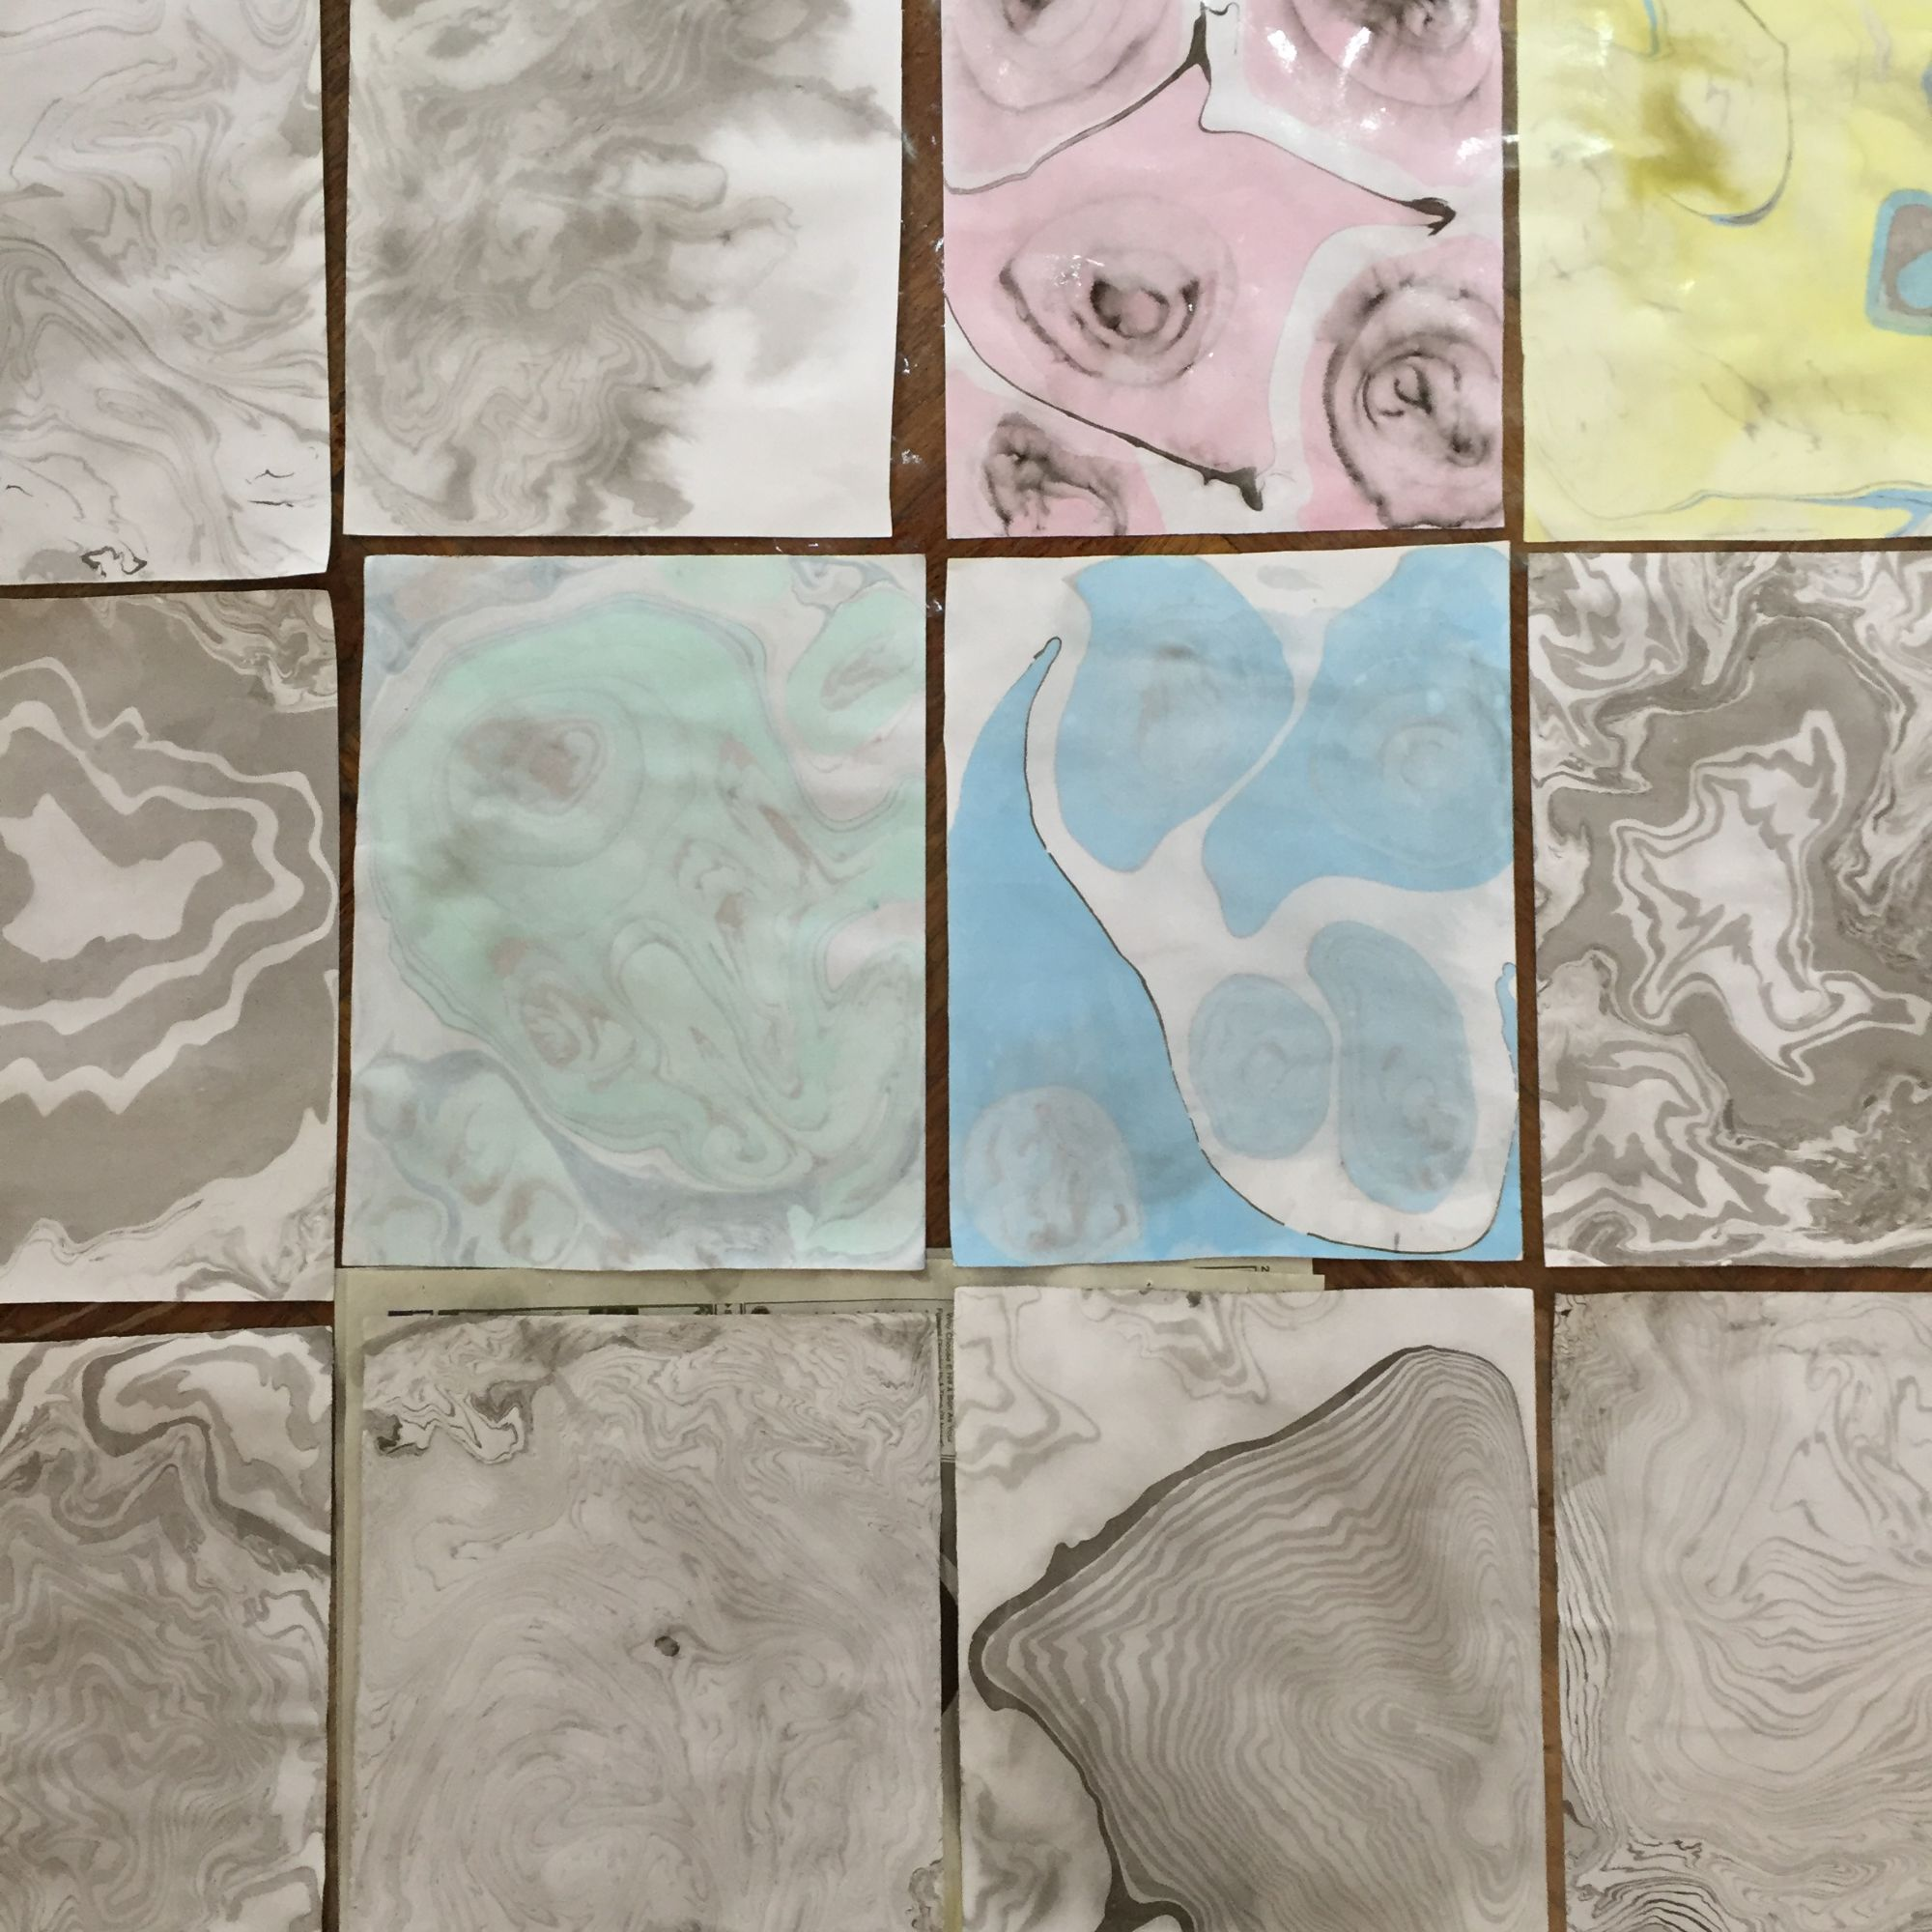 Japanese Marbling and Travellers Leather Journal Workshop - Papers